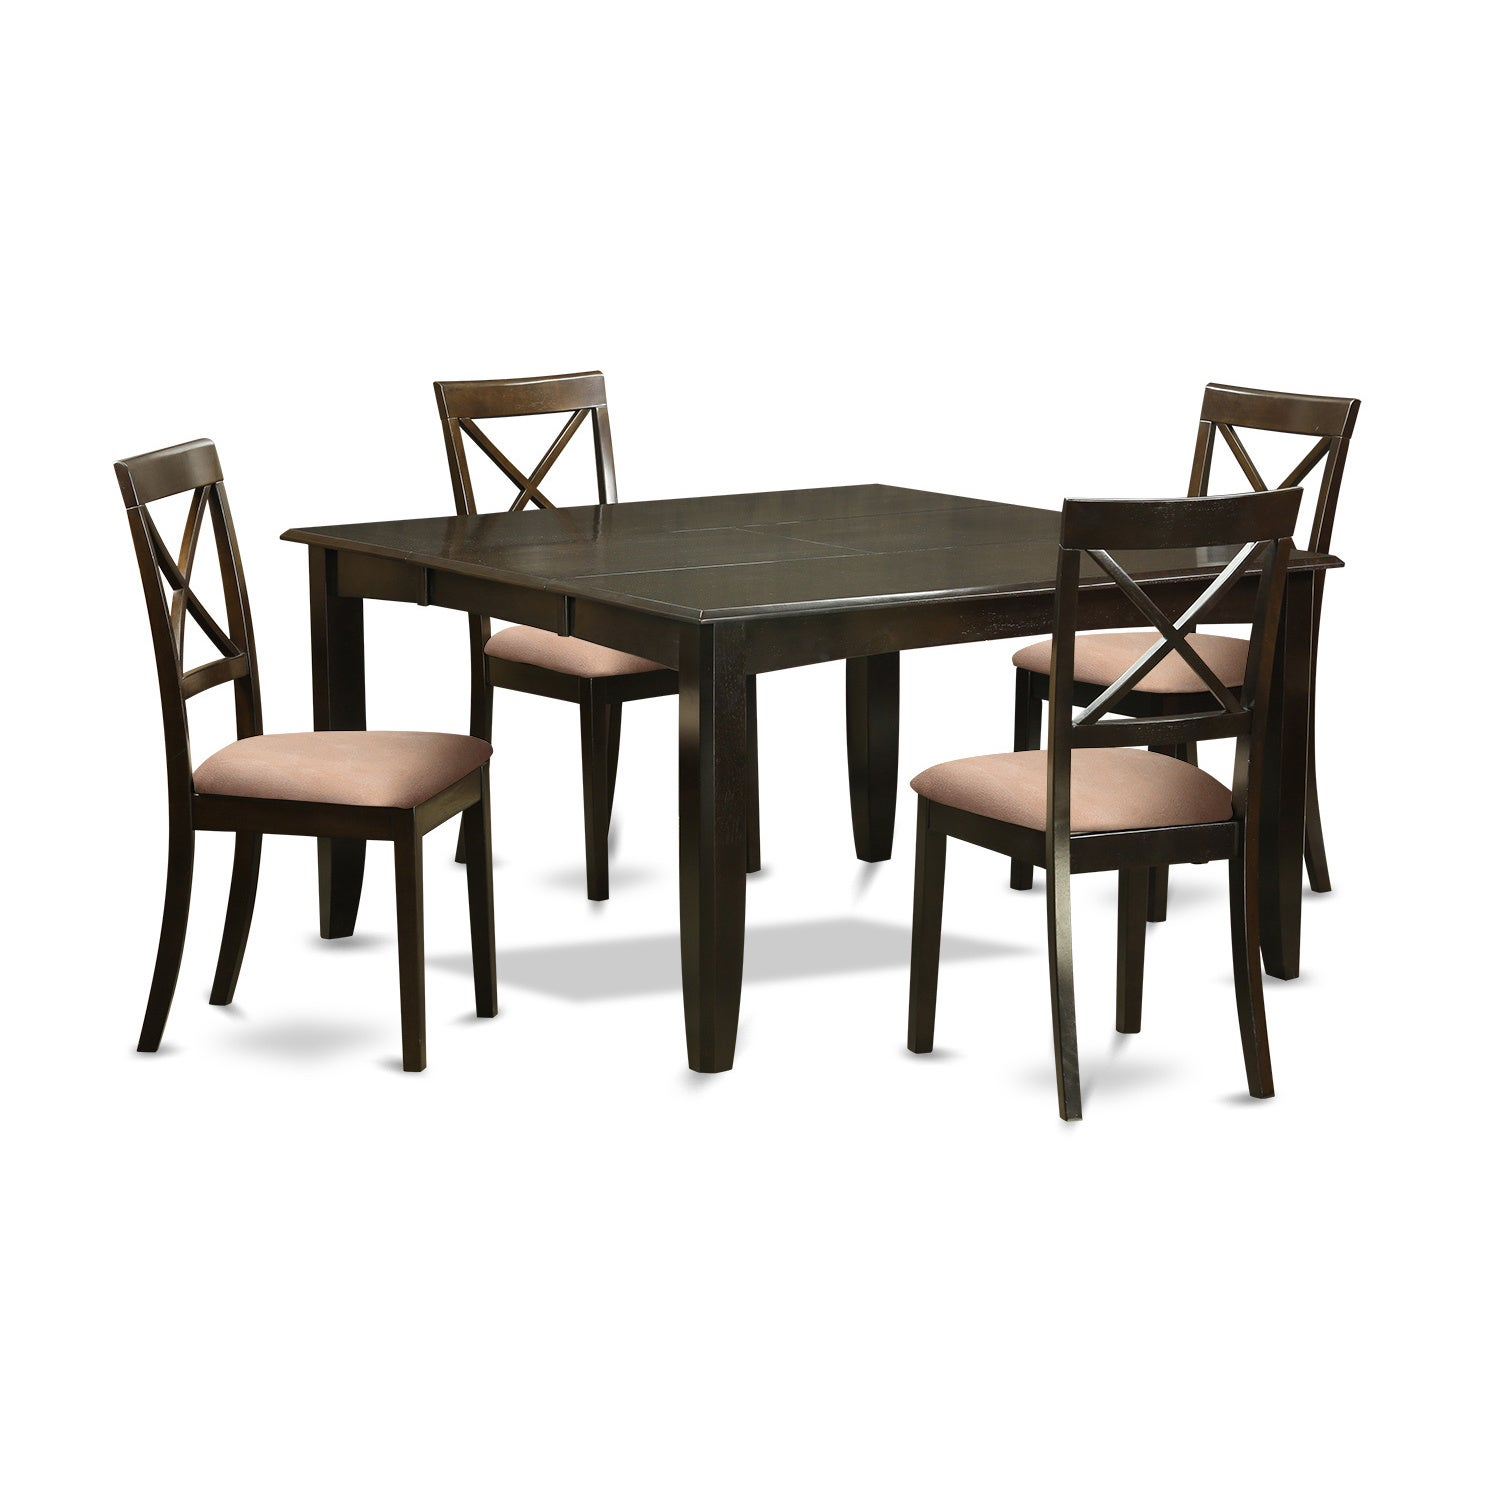 Buy 5 Piece Sets Kitchen & Dining Room Sets Online At Overstock Inside Most Popular West Hill Family Table 3 Piece Dining Sets (#4 of 20)